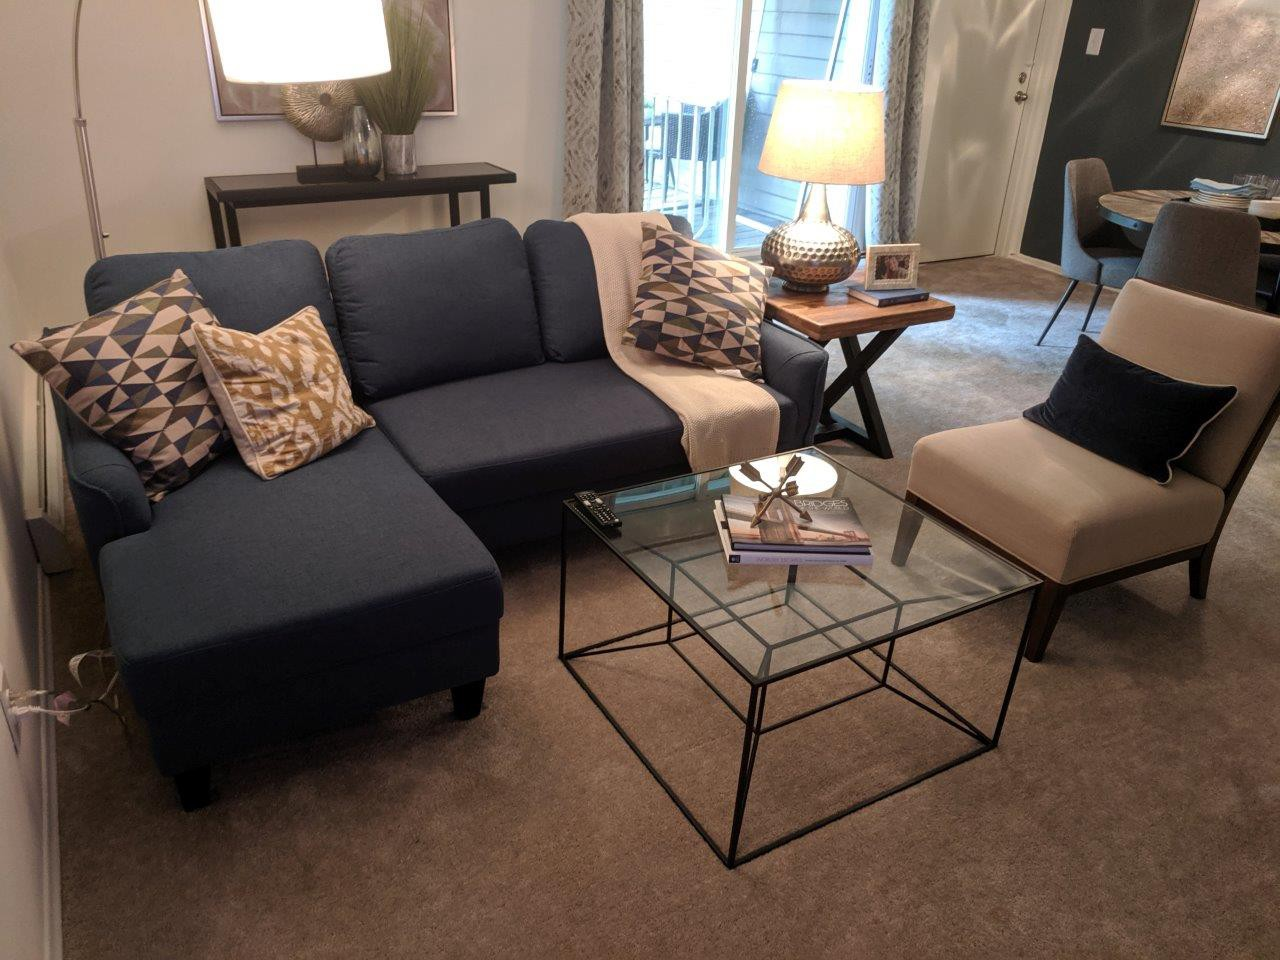 Sherwood Crossing Apartments & Townhomes for rent